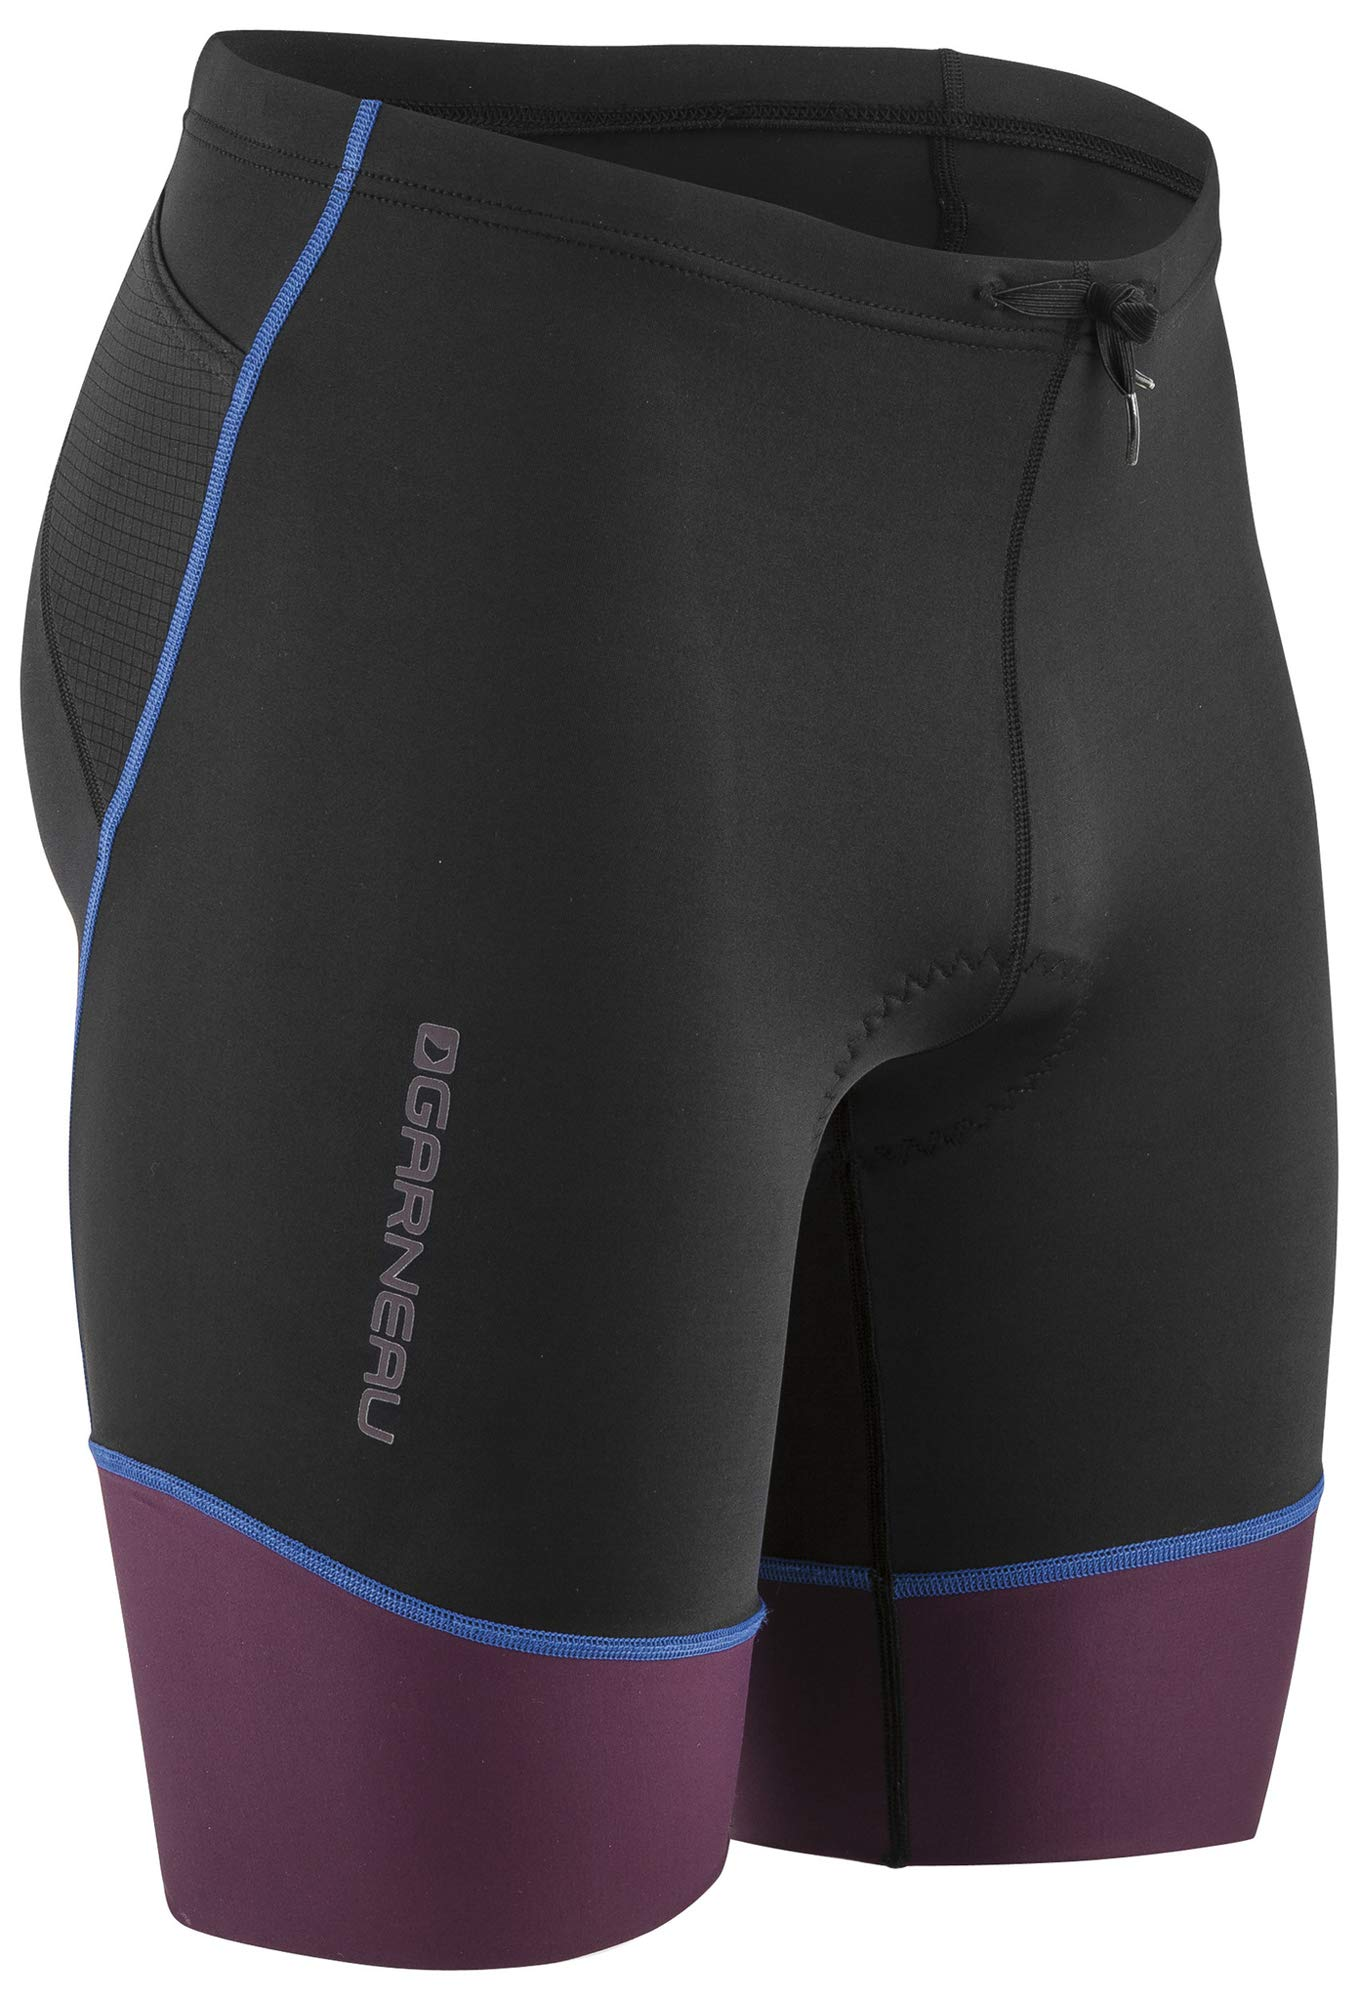 Louis Garneau Men's Tri Comp Lightweight, Breathable, Padded Triathlon Bike Shorts, Black/Purple/Blue, Medium